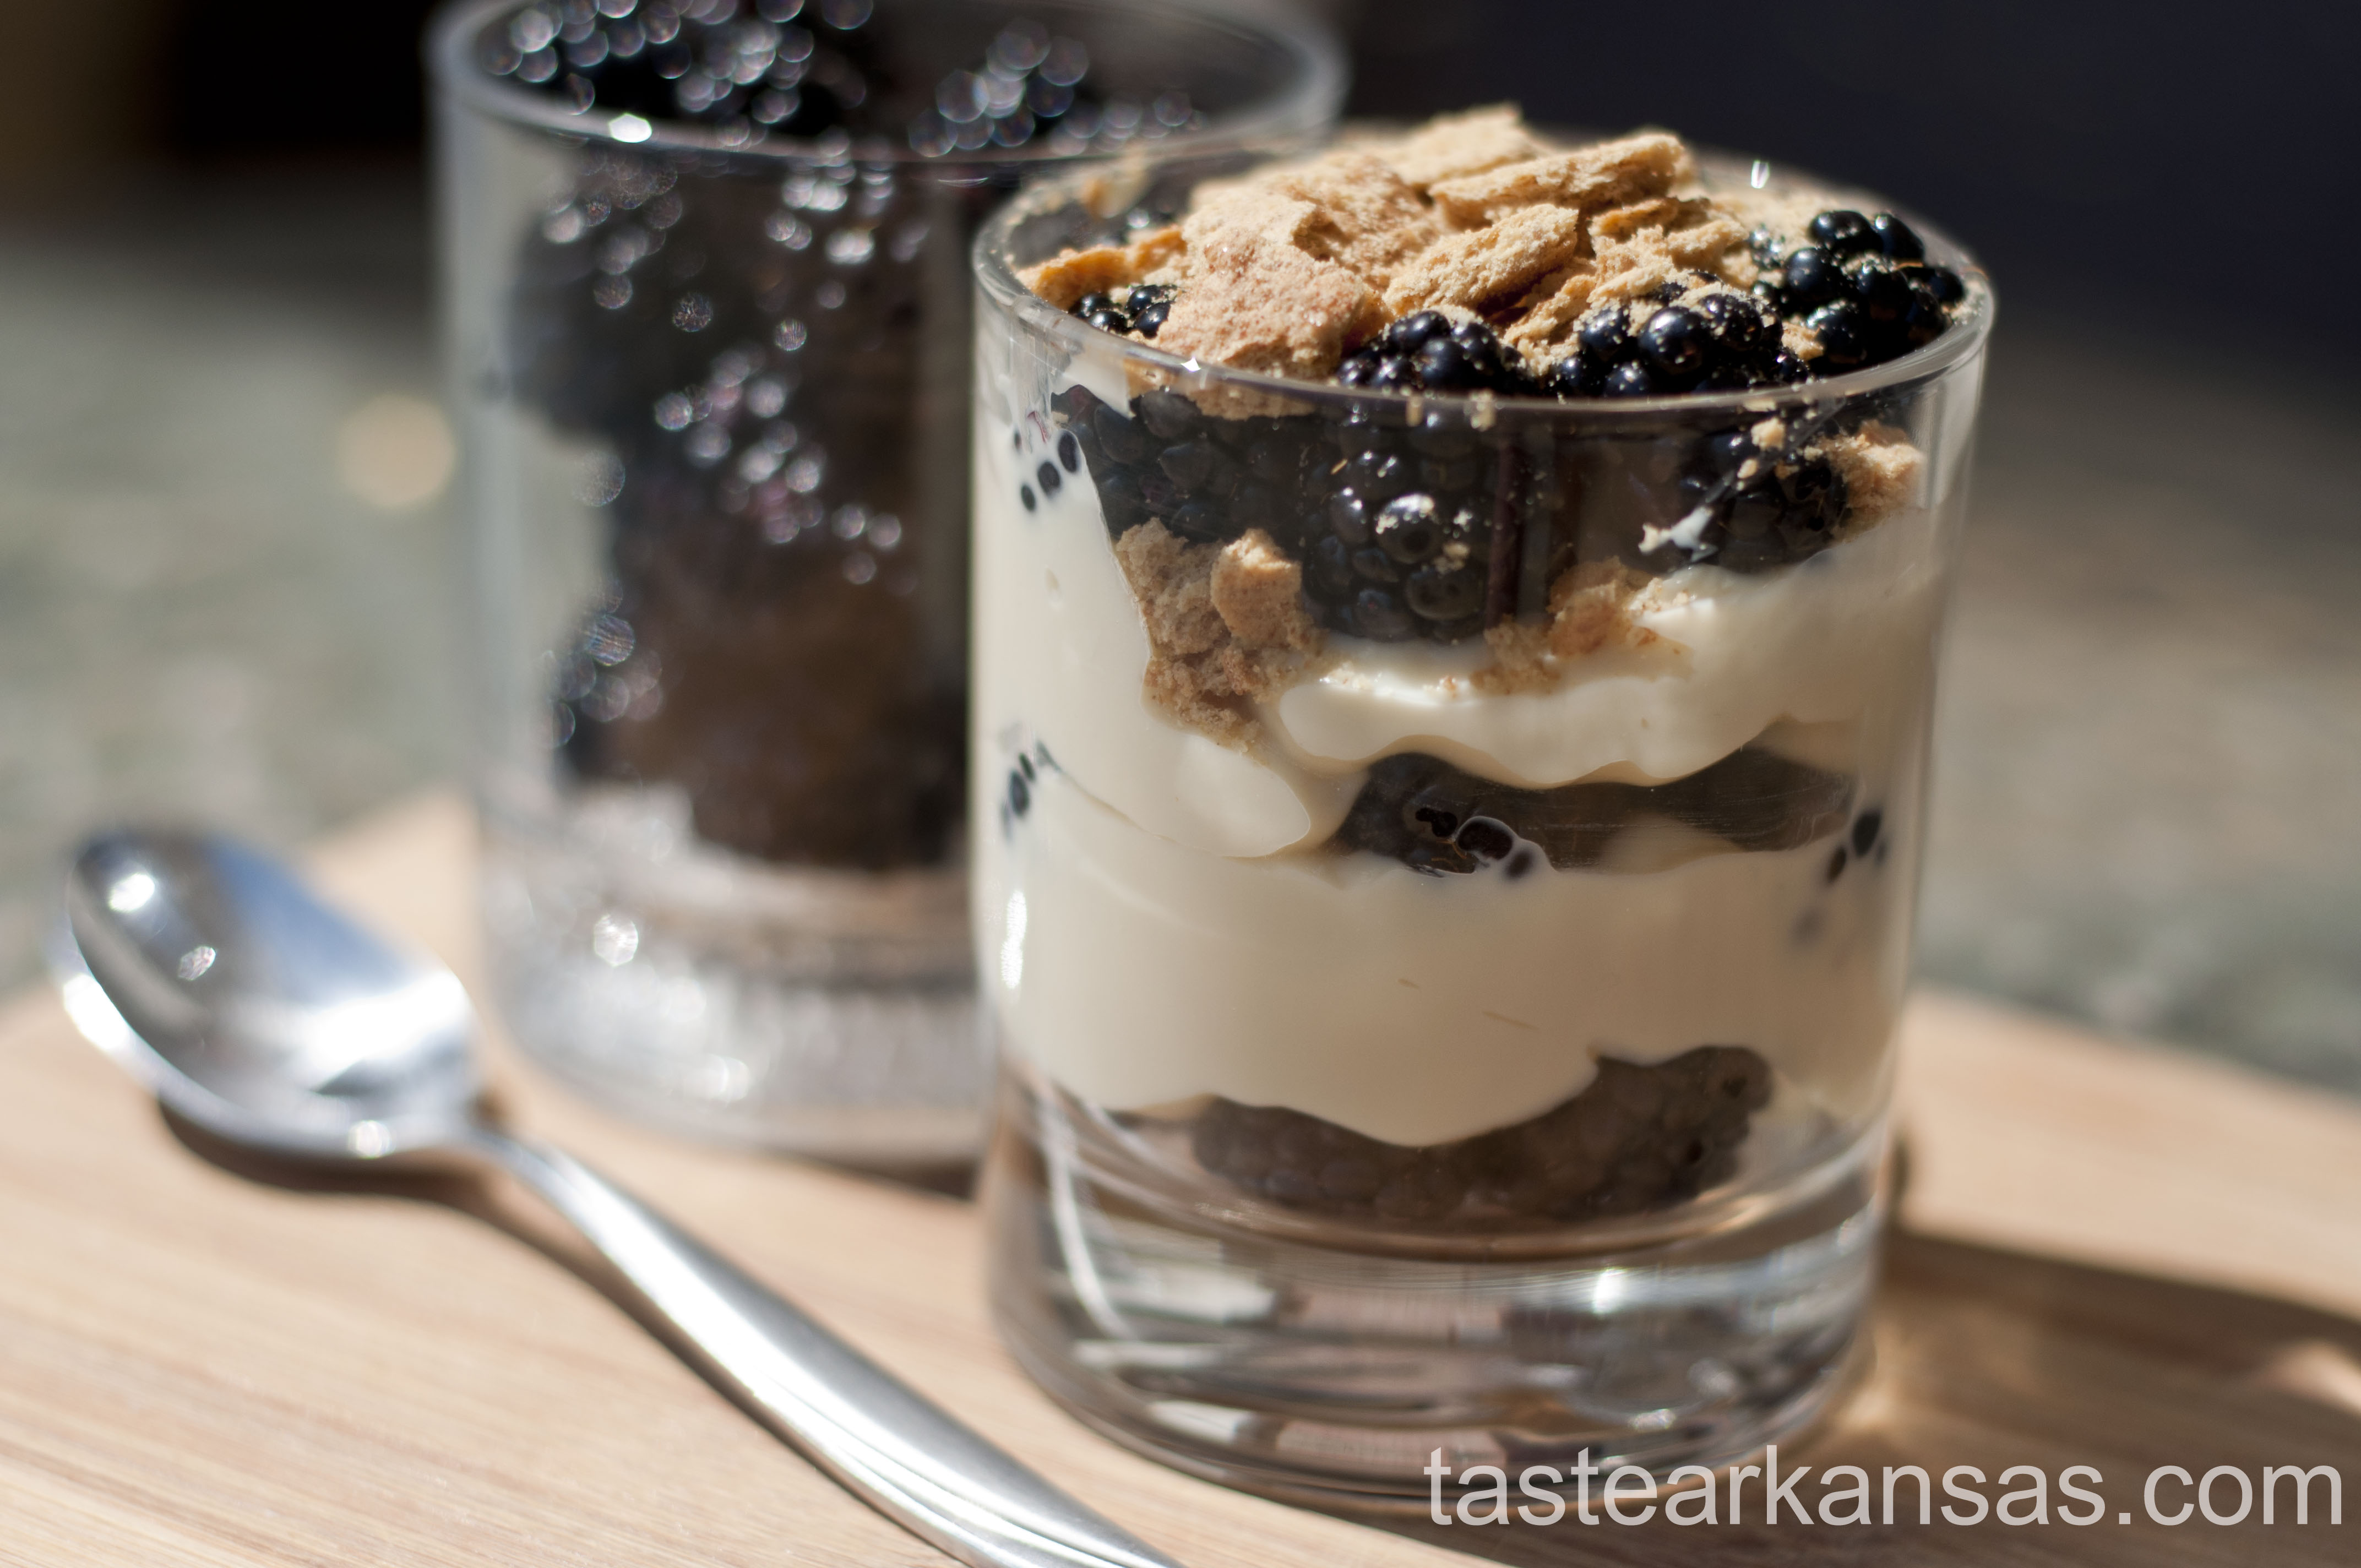 Blackberry Graham Cracker Parfait